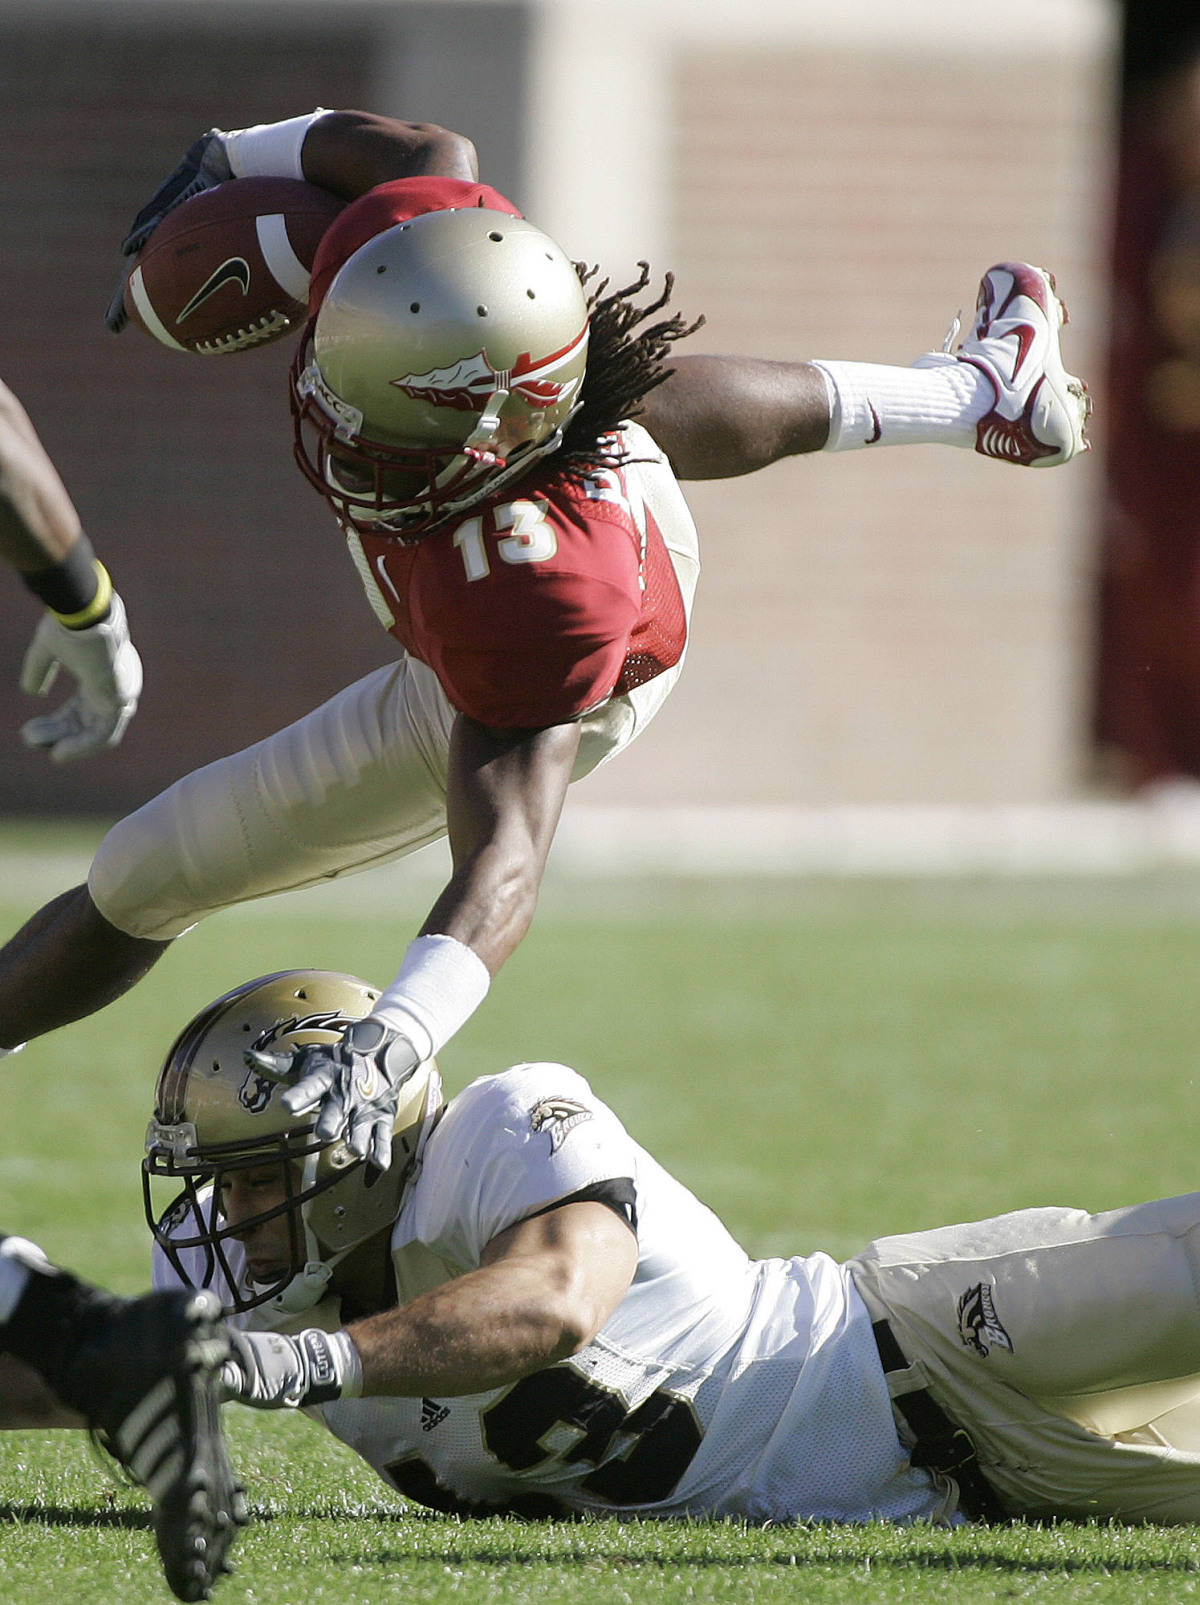 Florida State's Preston Parker, top, goes airborne as he is tackled by Western Michigan defender Ameer Ismail, bottom, during the first quarter of a football game, Saturday, Nov. 18, 2006, in Tallahassee, Fla. (AP Photo/Phil Coale)